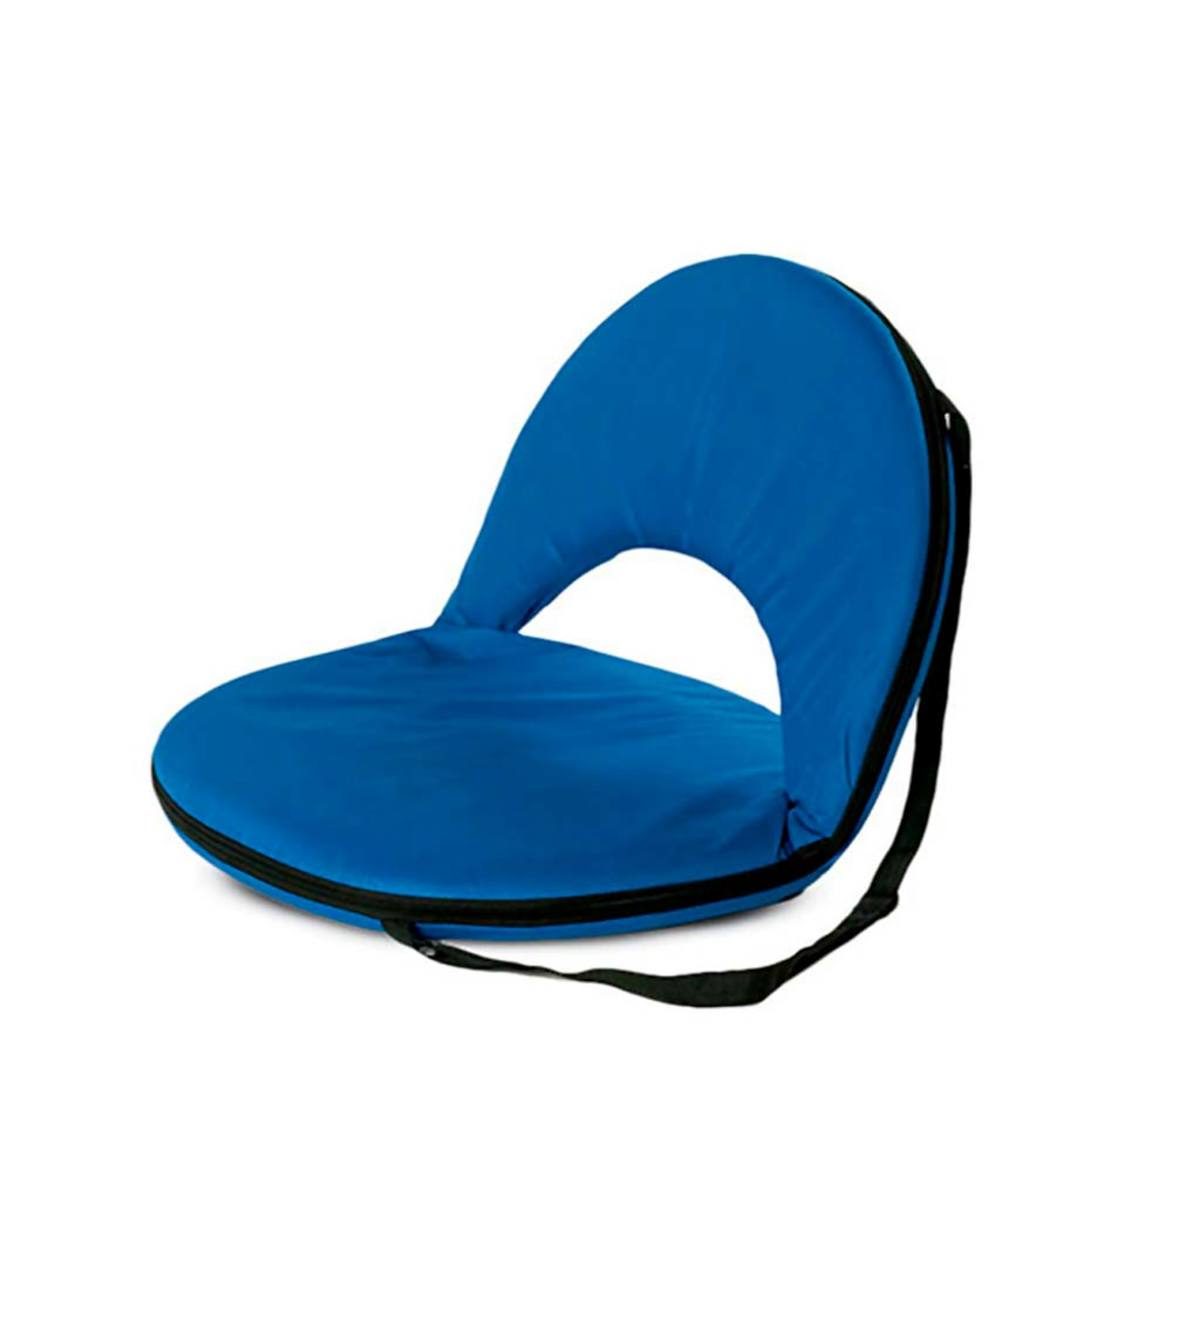 5-Position Folding Chair - Bright Blue